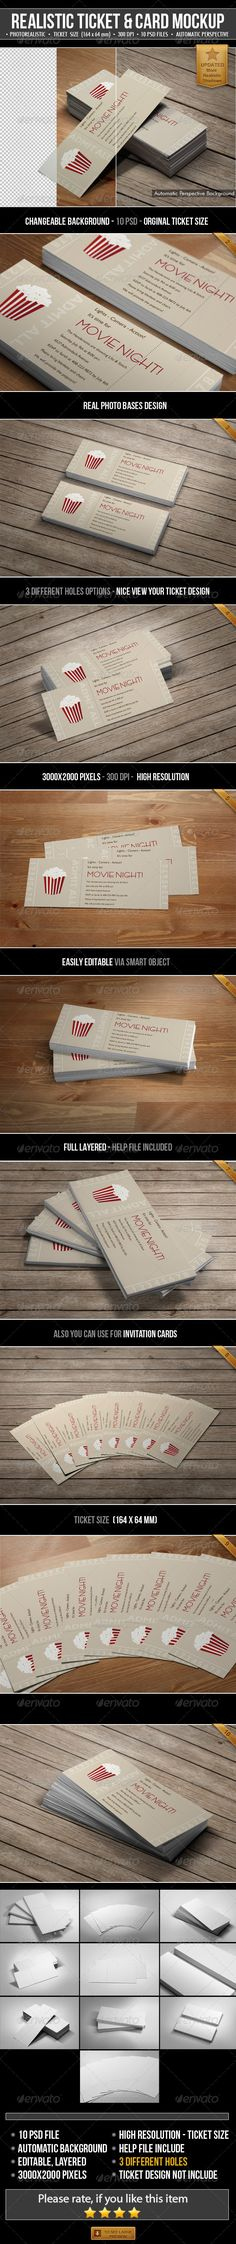 Realistic Ticket & Card Mockup Download here: https://graphicriver.net/item/realistic-ticket-card-mockup/6219400?ref=KlitVogli